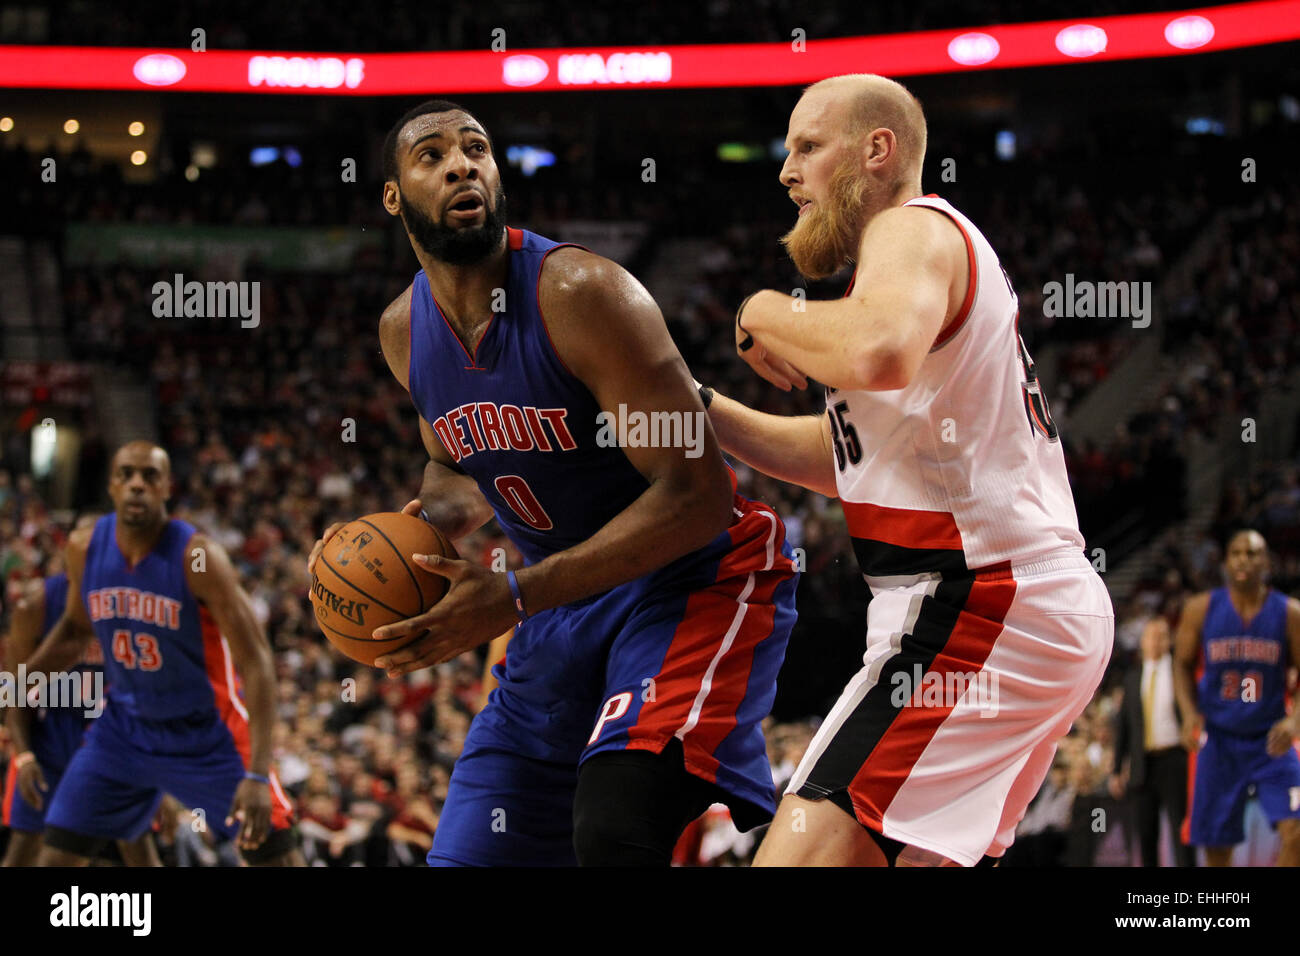 March 13, 2015 - ANDRE DRUMMOND (0) posts up near the basket. The Portland Trail Blazers play the Detroit Pistons Stock Photo